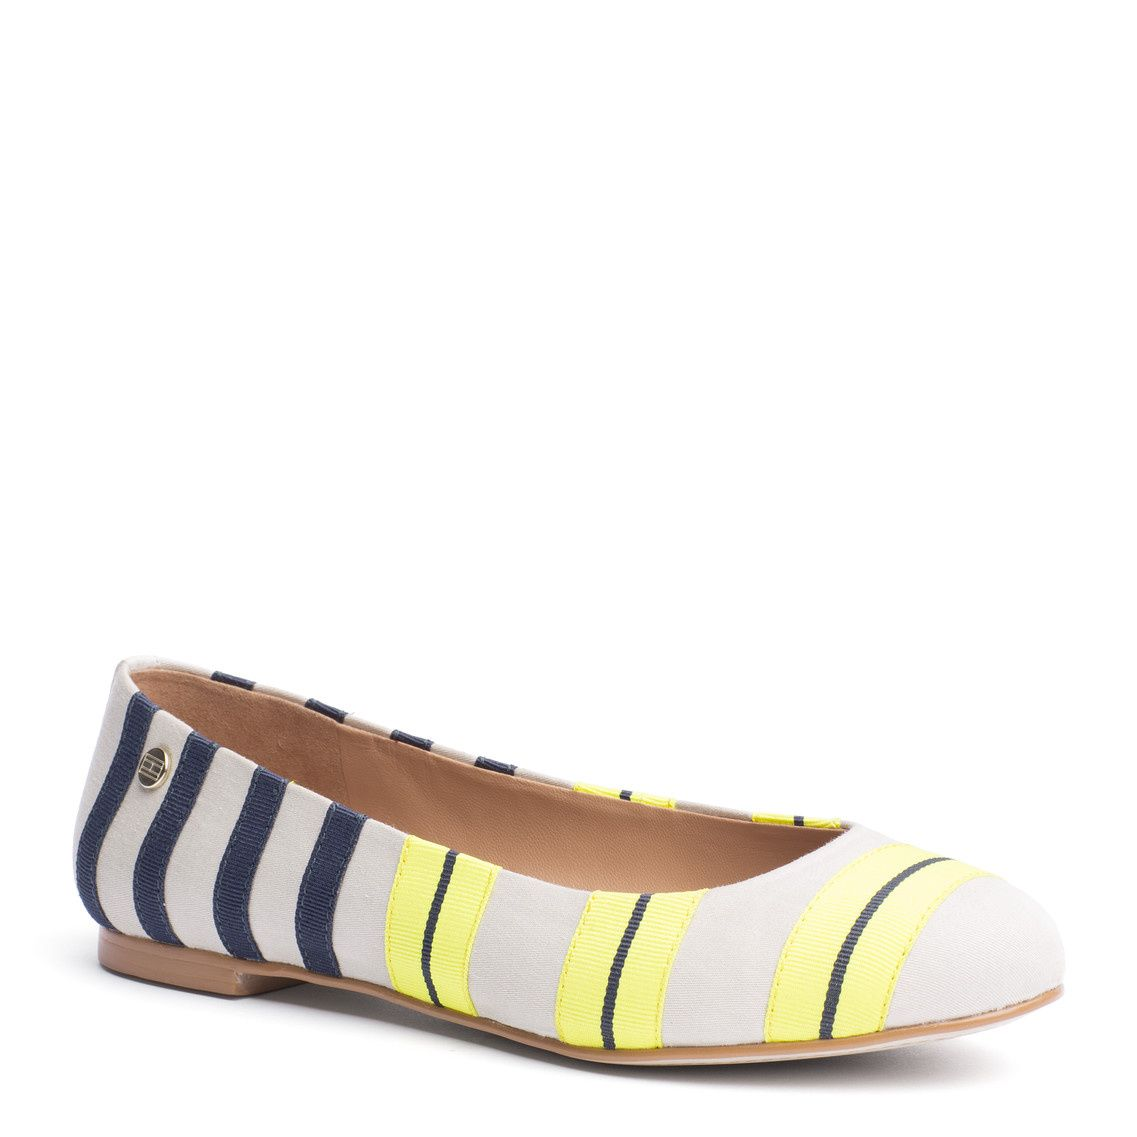 The perfect ballerina for your look. Leather upper with multi-coloured grosgrain stripes. Tommy Hilfiger flag embroidered at the heel. Cotton lining, leather sock lining. Slim tunit outsole.